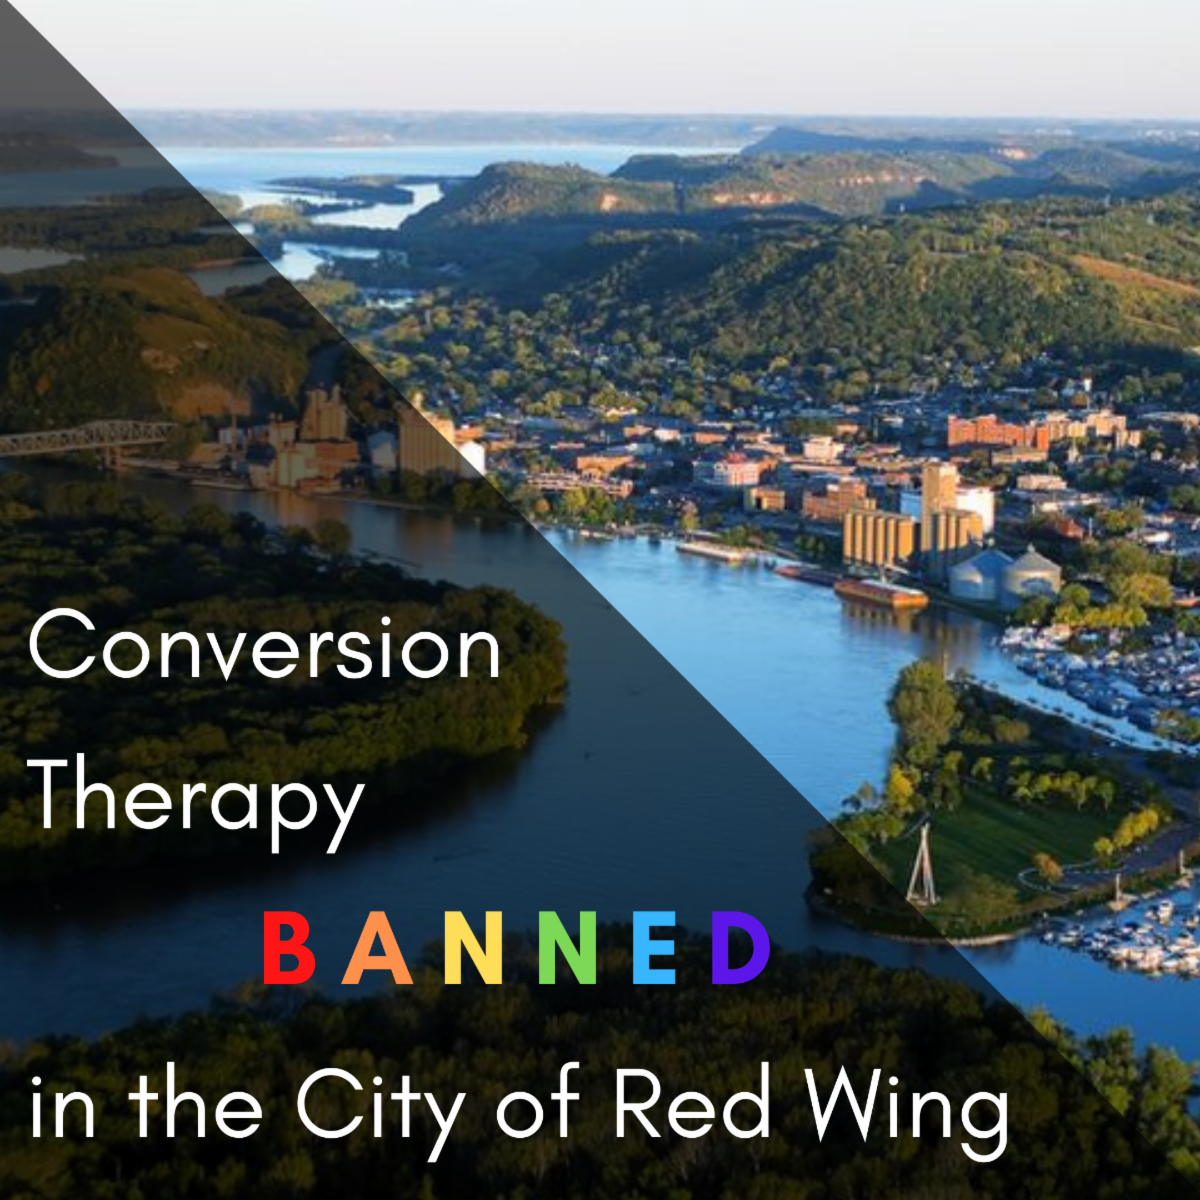 Overlook of Red Wing with the words Conversion Therapy BANNED in the City of Red Wing